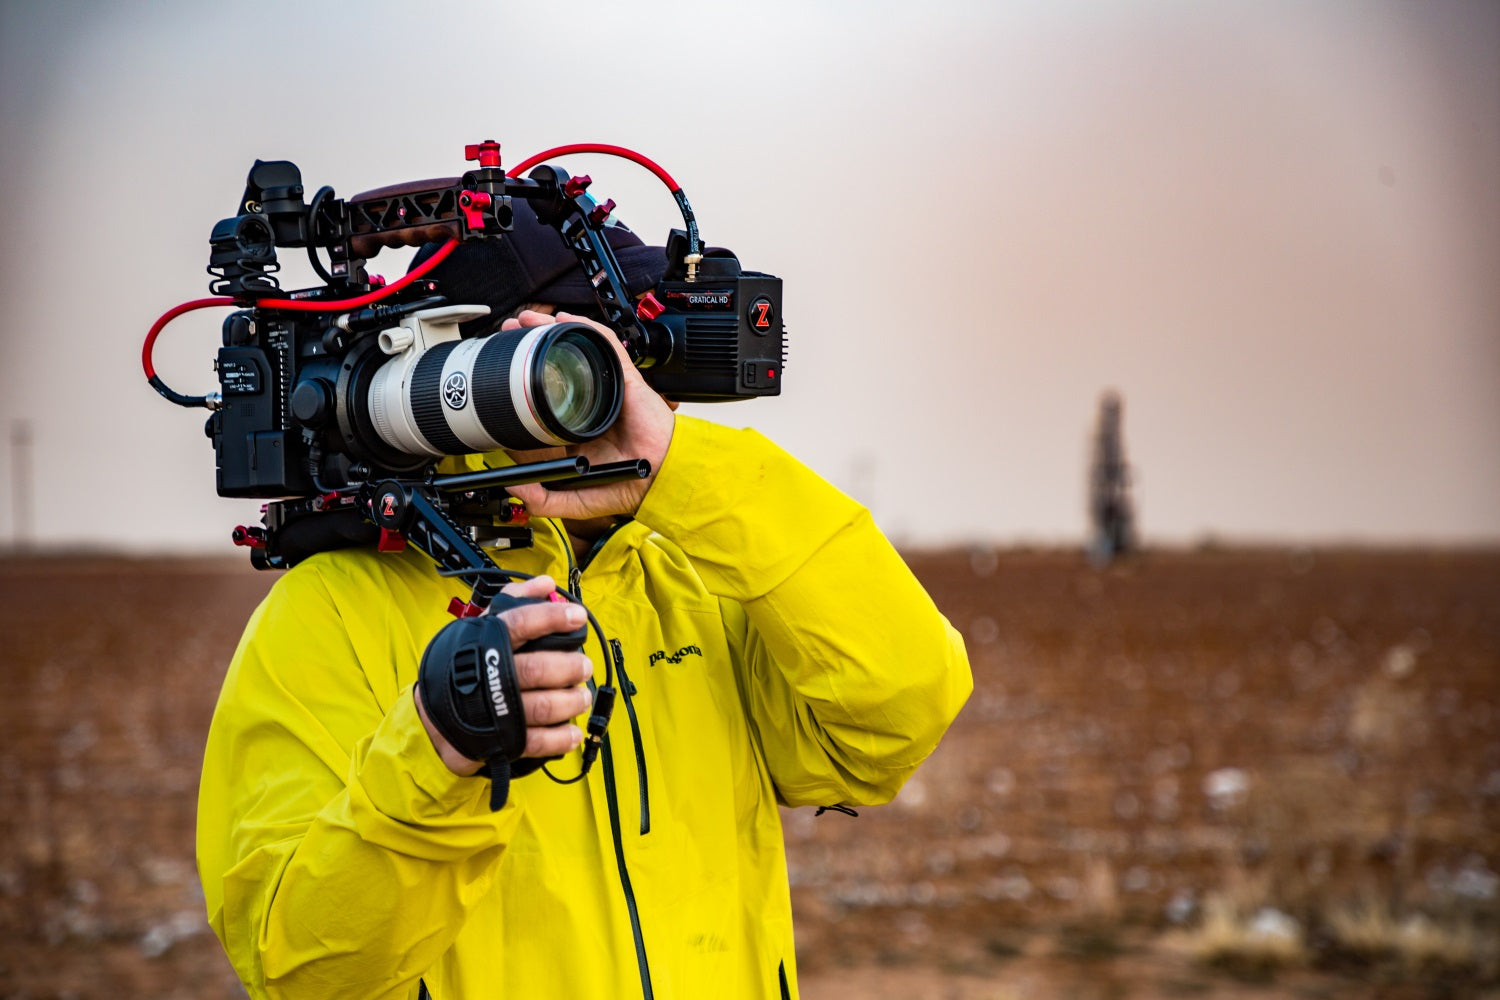 Rod Guajardo with the Canon C200 Shoulder Rig from Zacuto_6